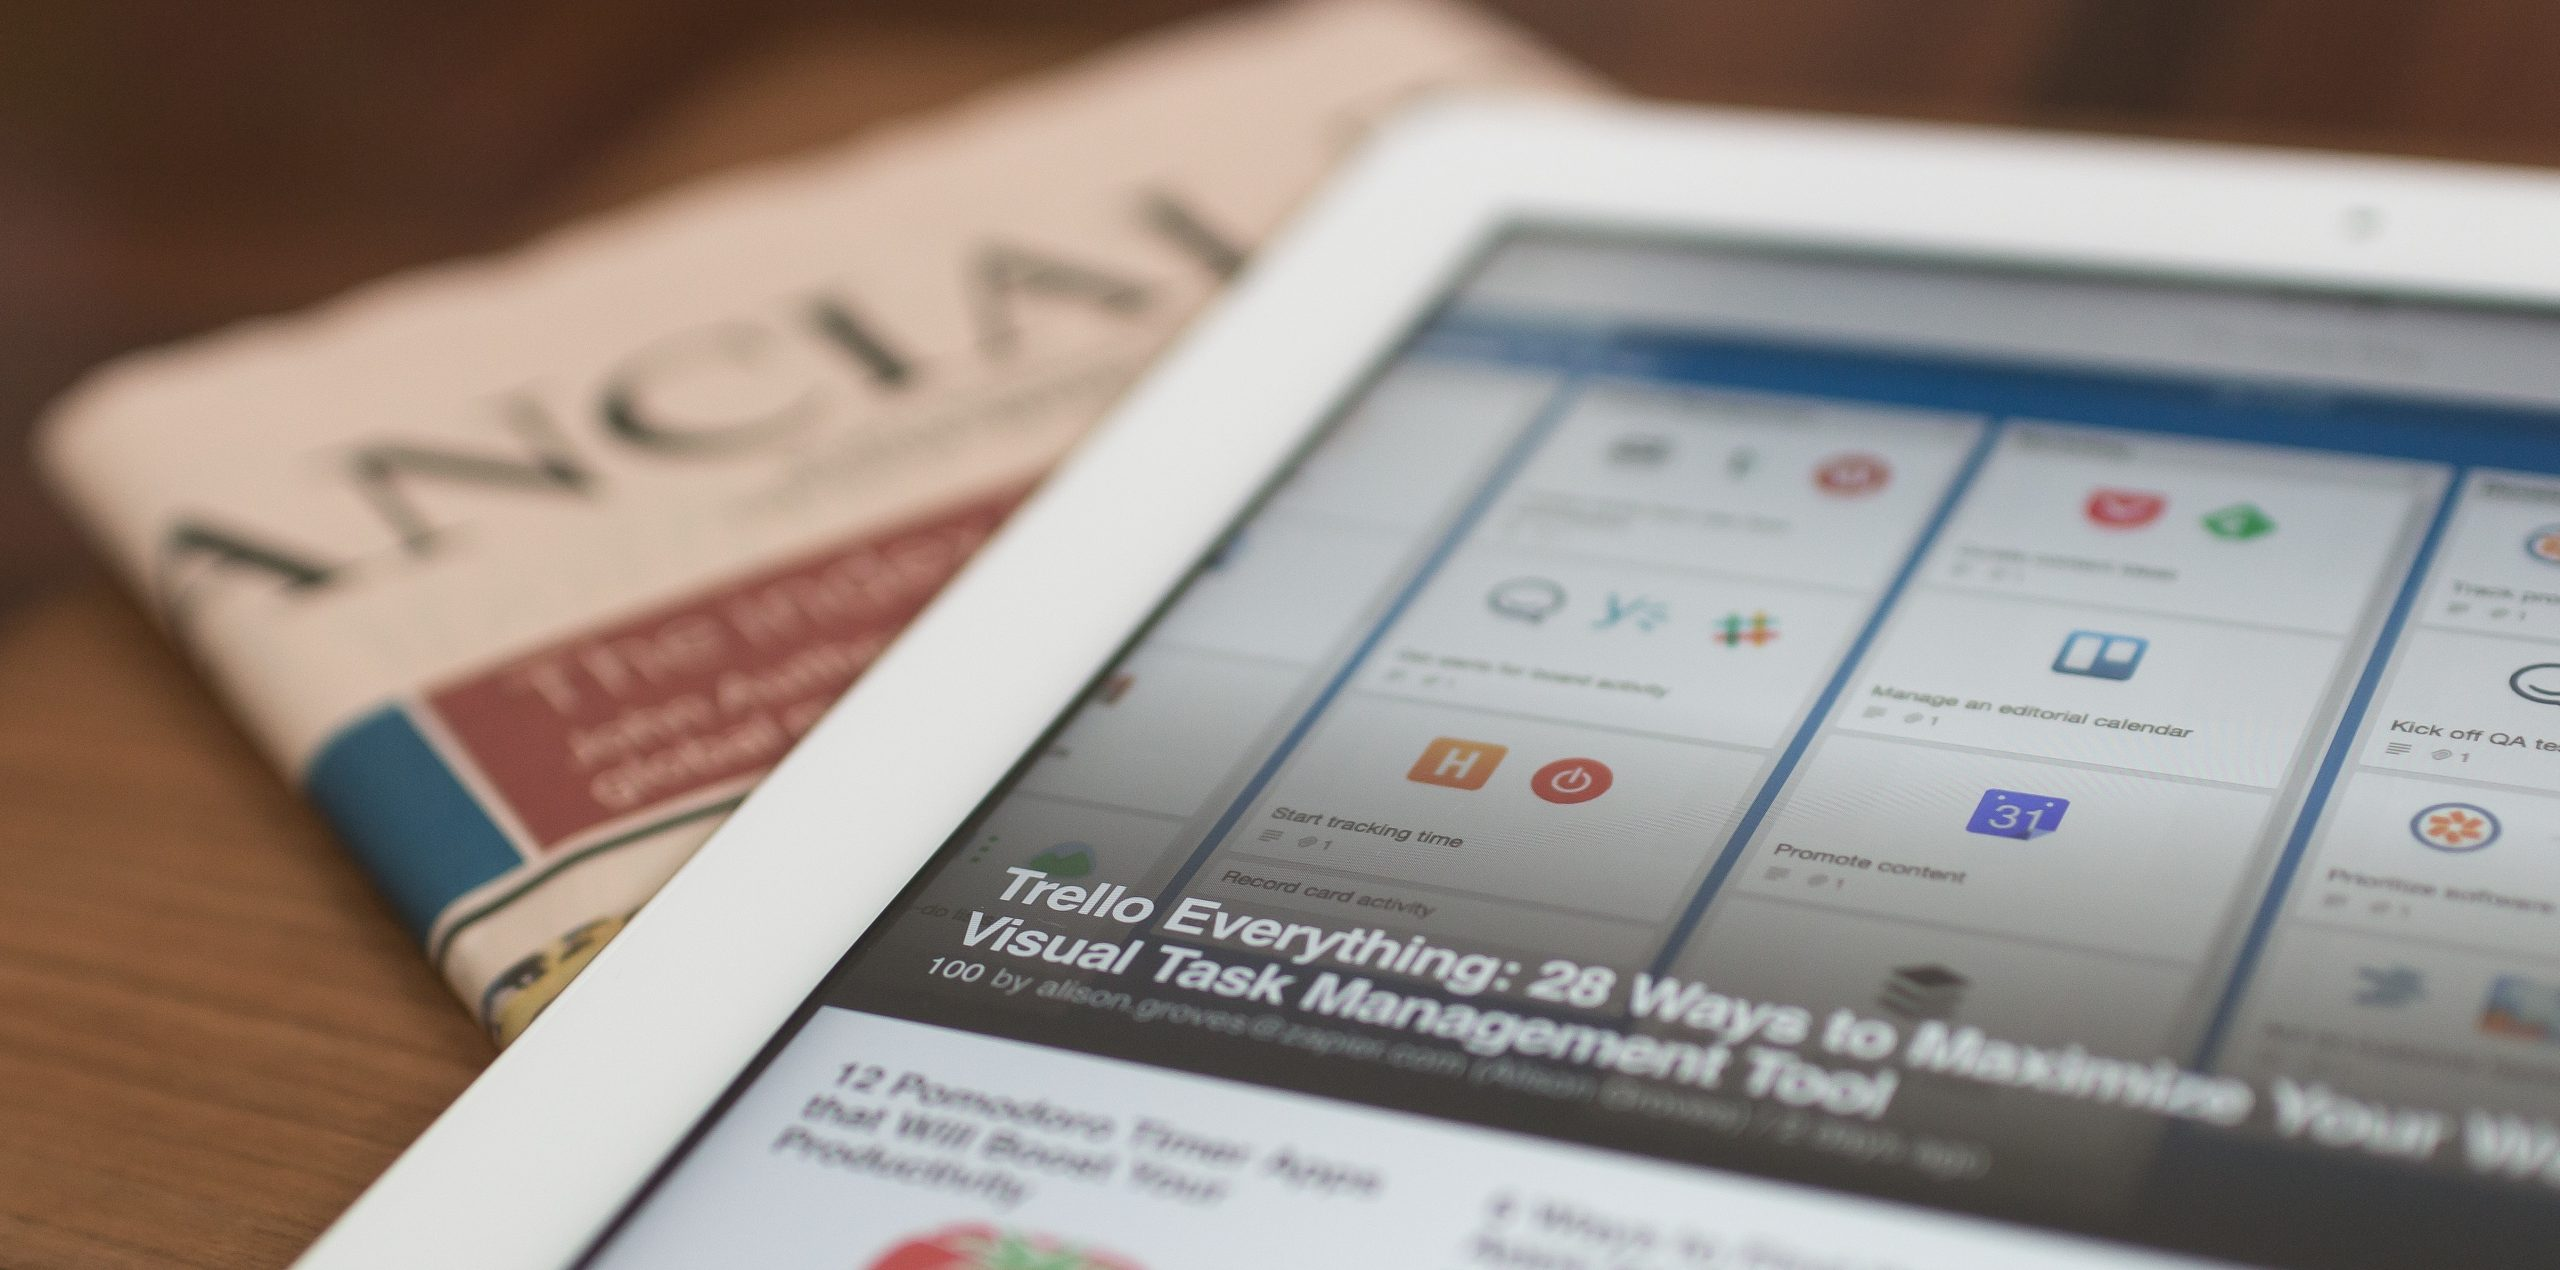 An image of a newspaper and a tab showing the importance of headlines for better click through rate